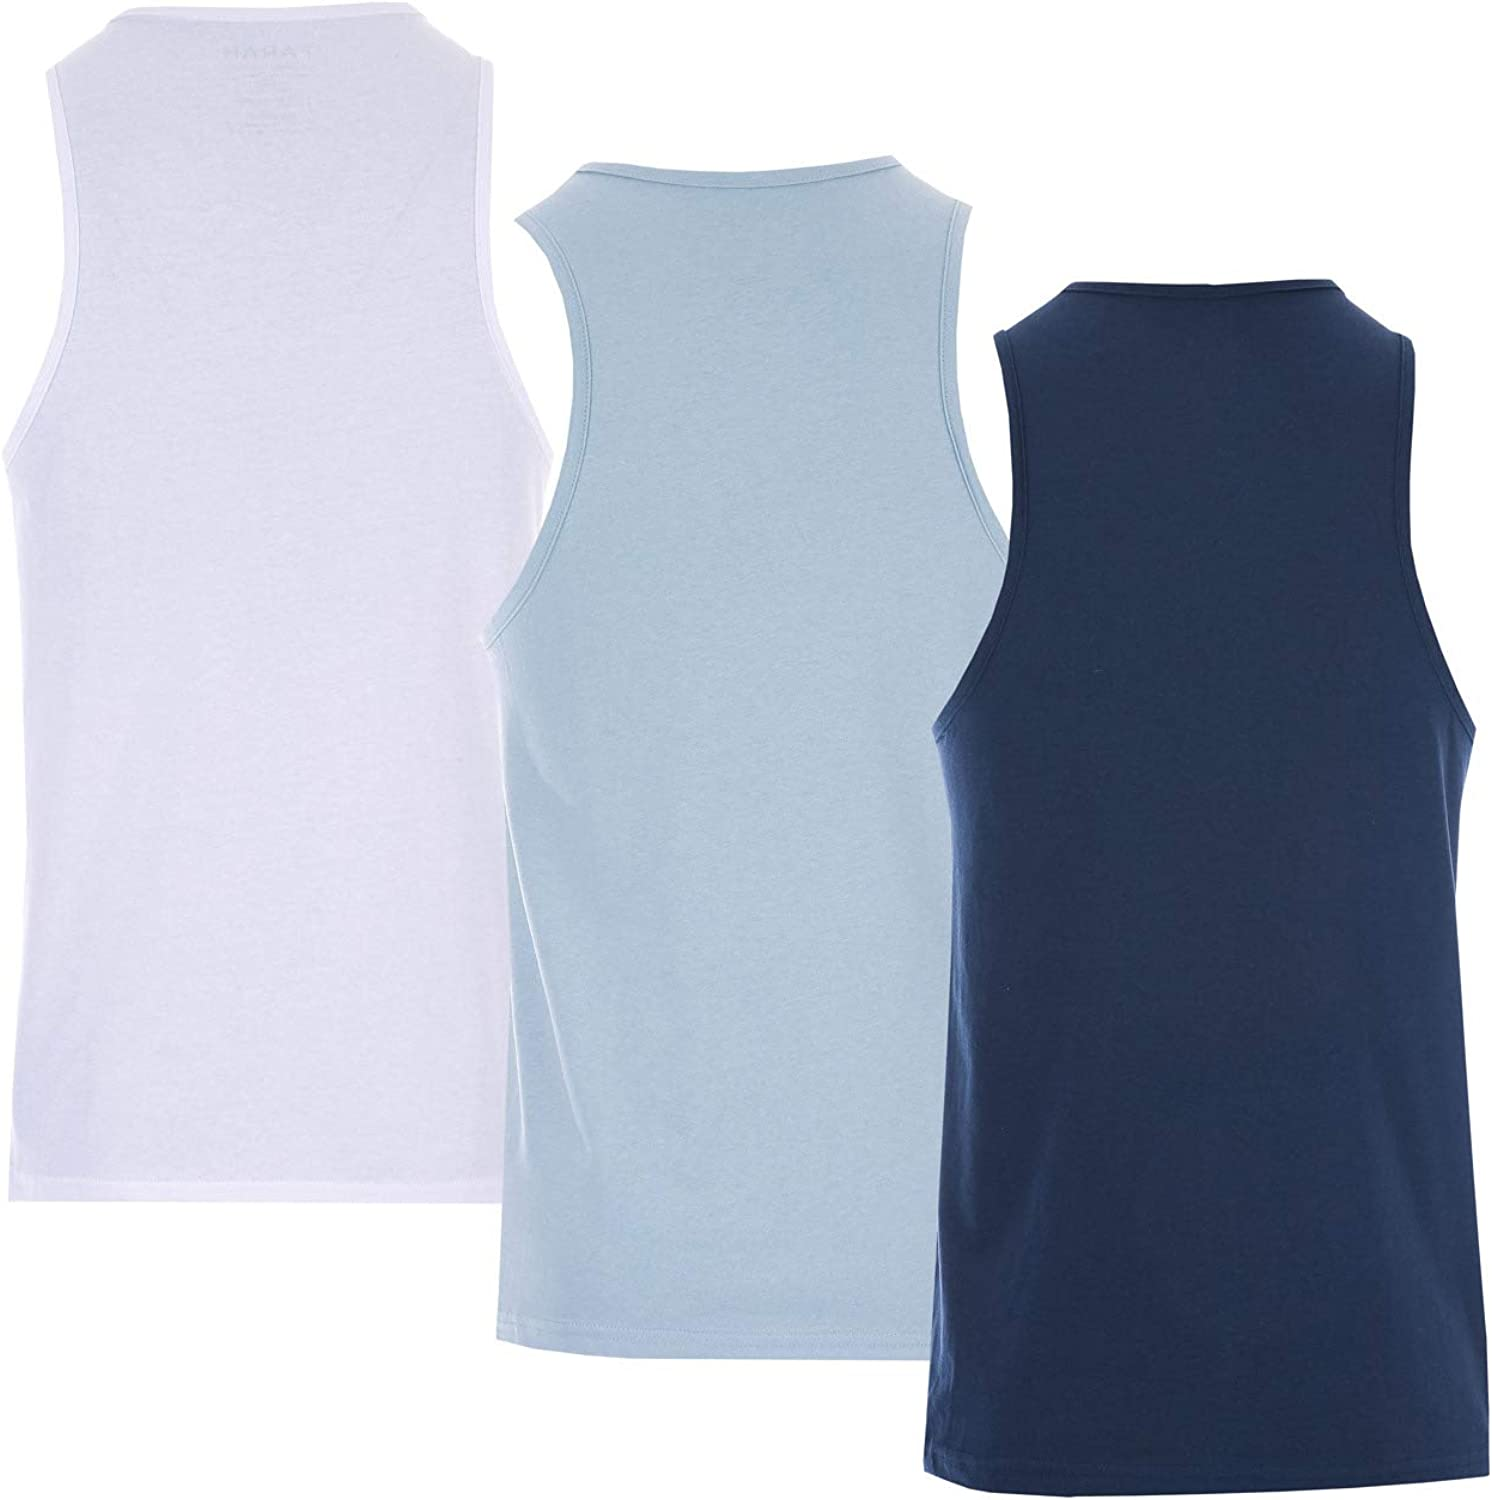 Farah Mens Vestire 3 Pack Vests in Navy//White//Light Blue One One Vest White